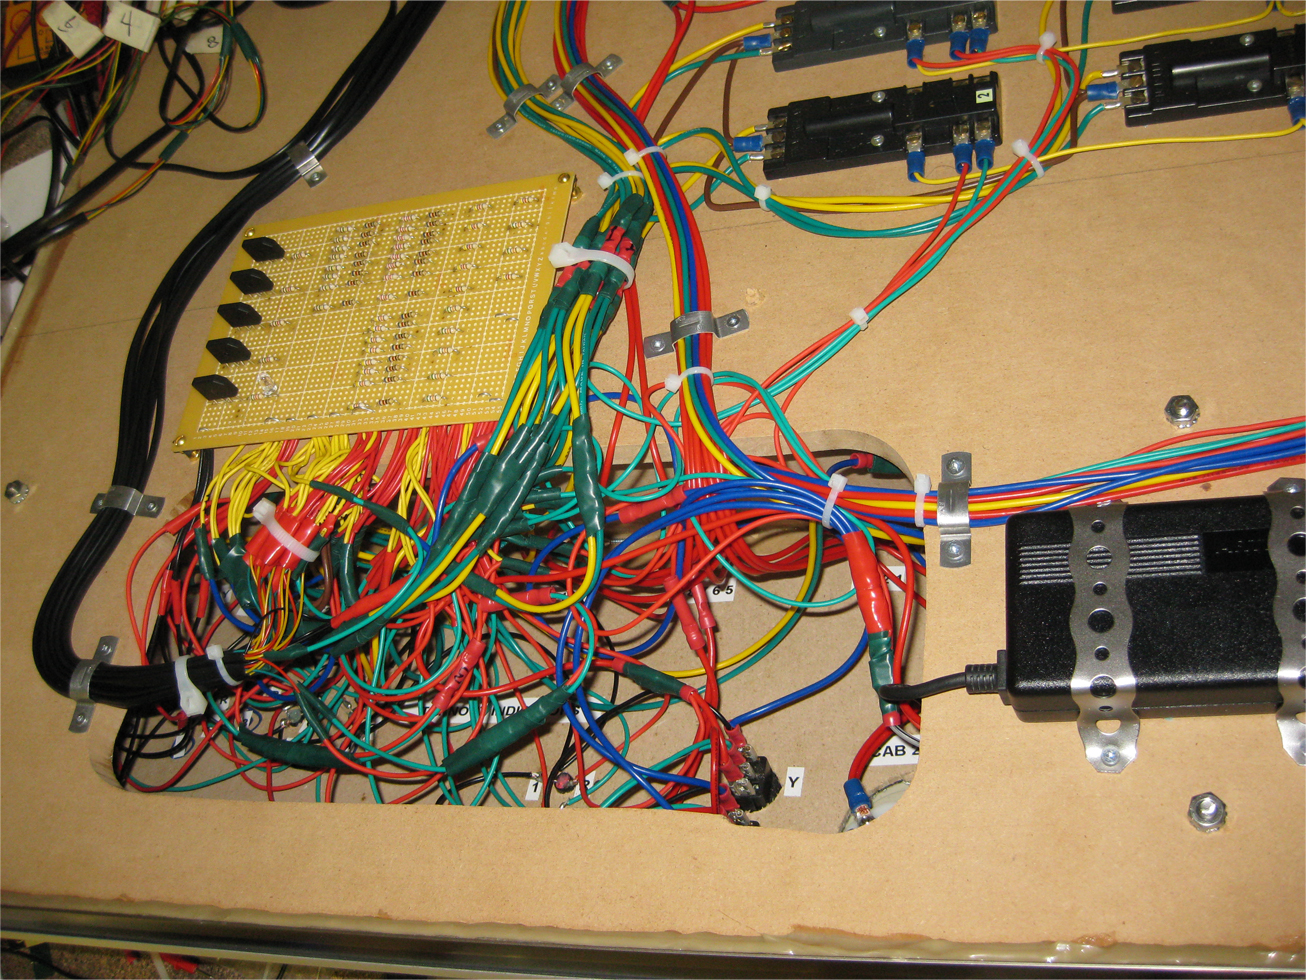 boat wiring leds wiring leds train layouts ty's model railroad: holiday wiring - part i